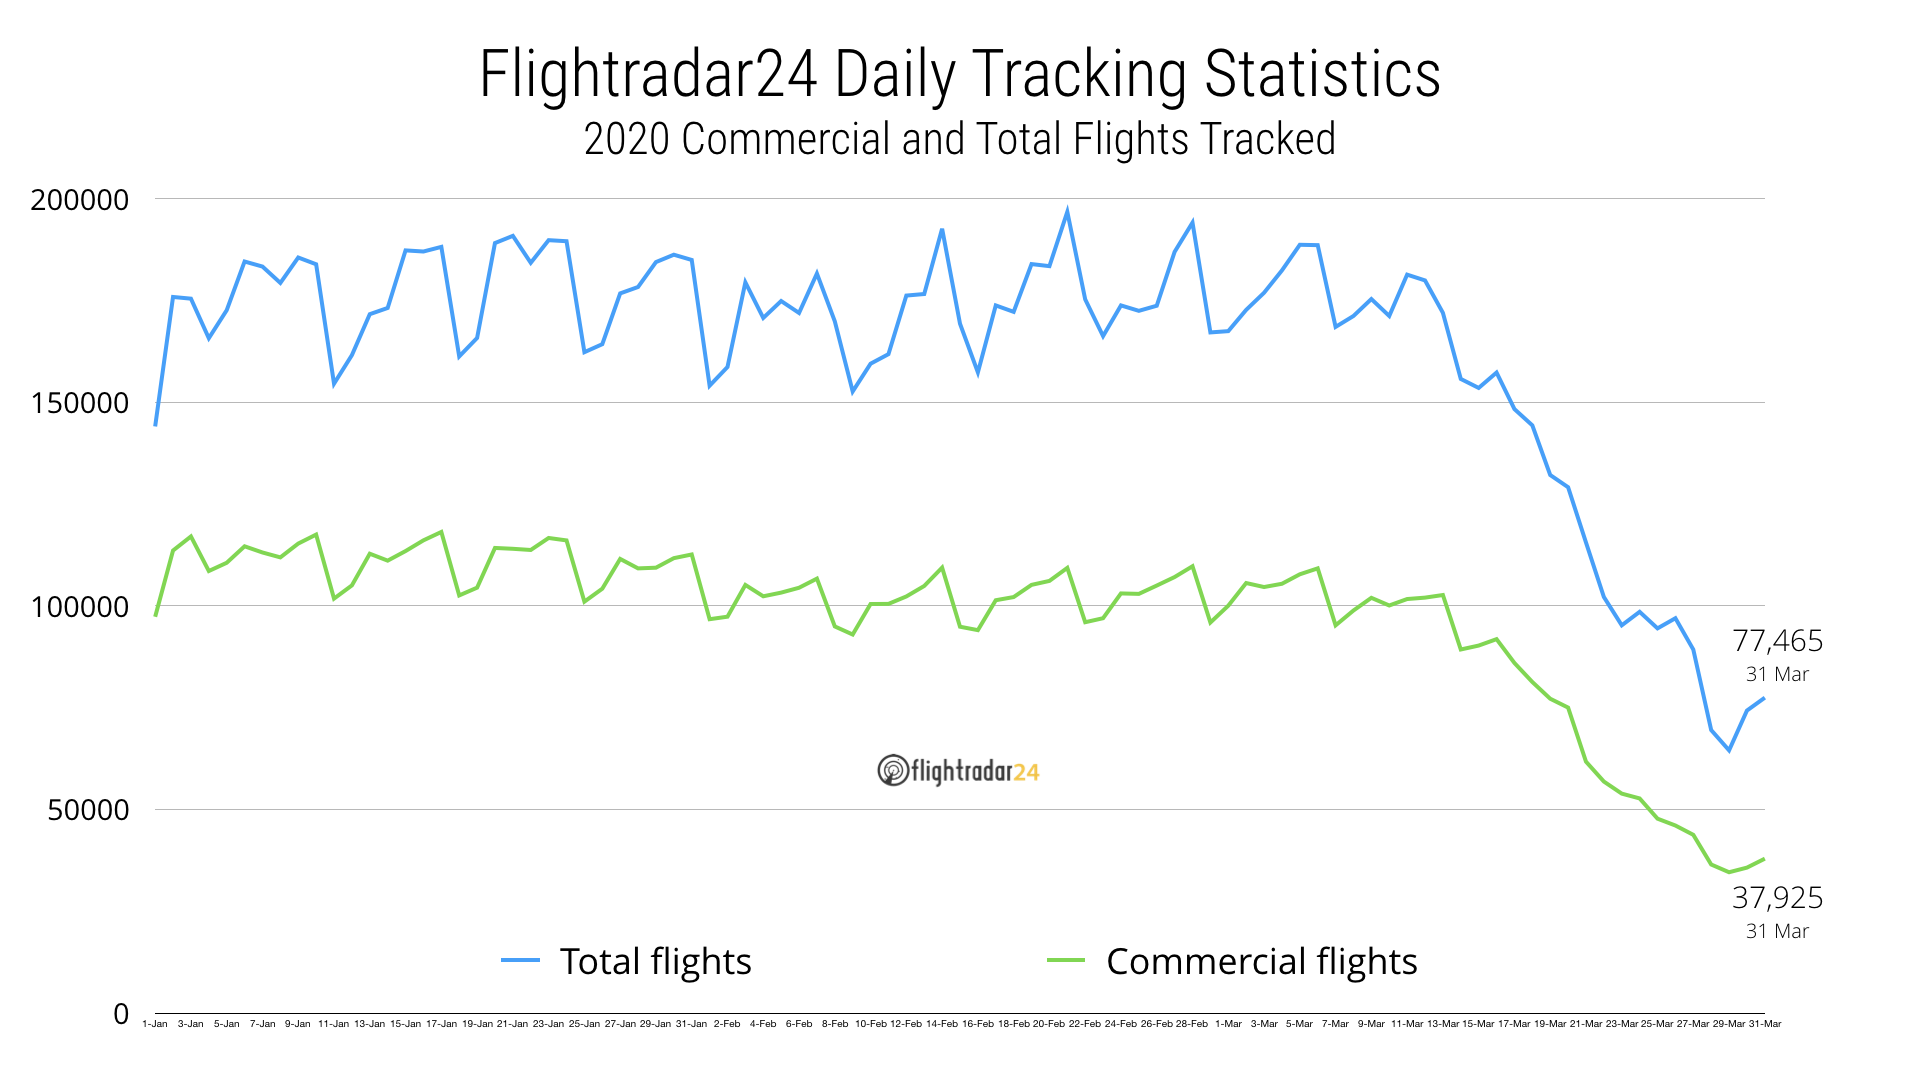 Commercial and Total flights tracked in 2020